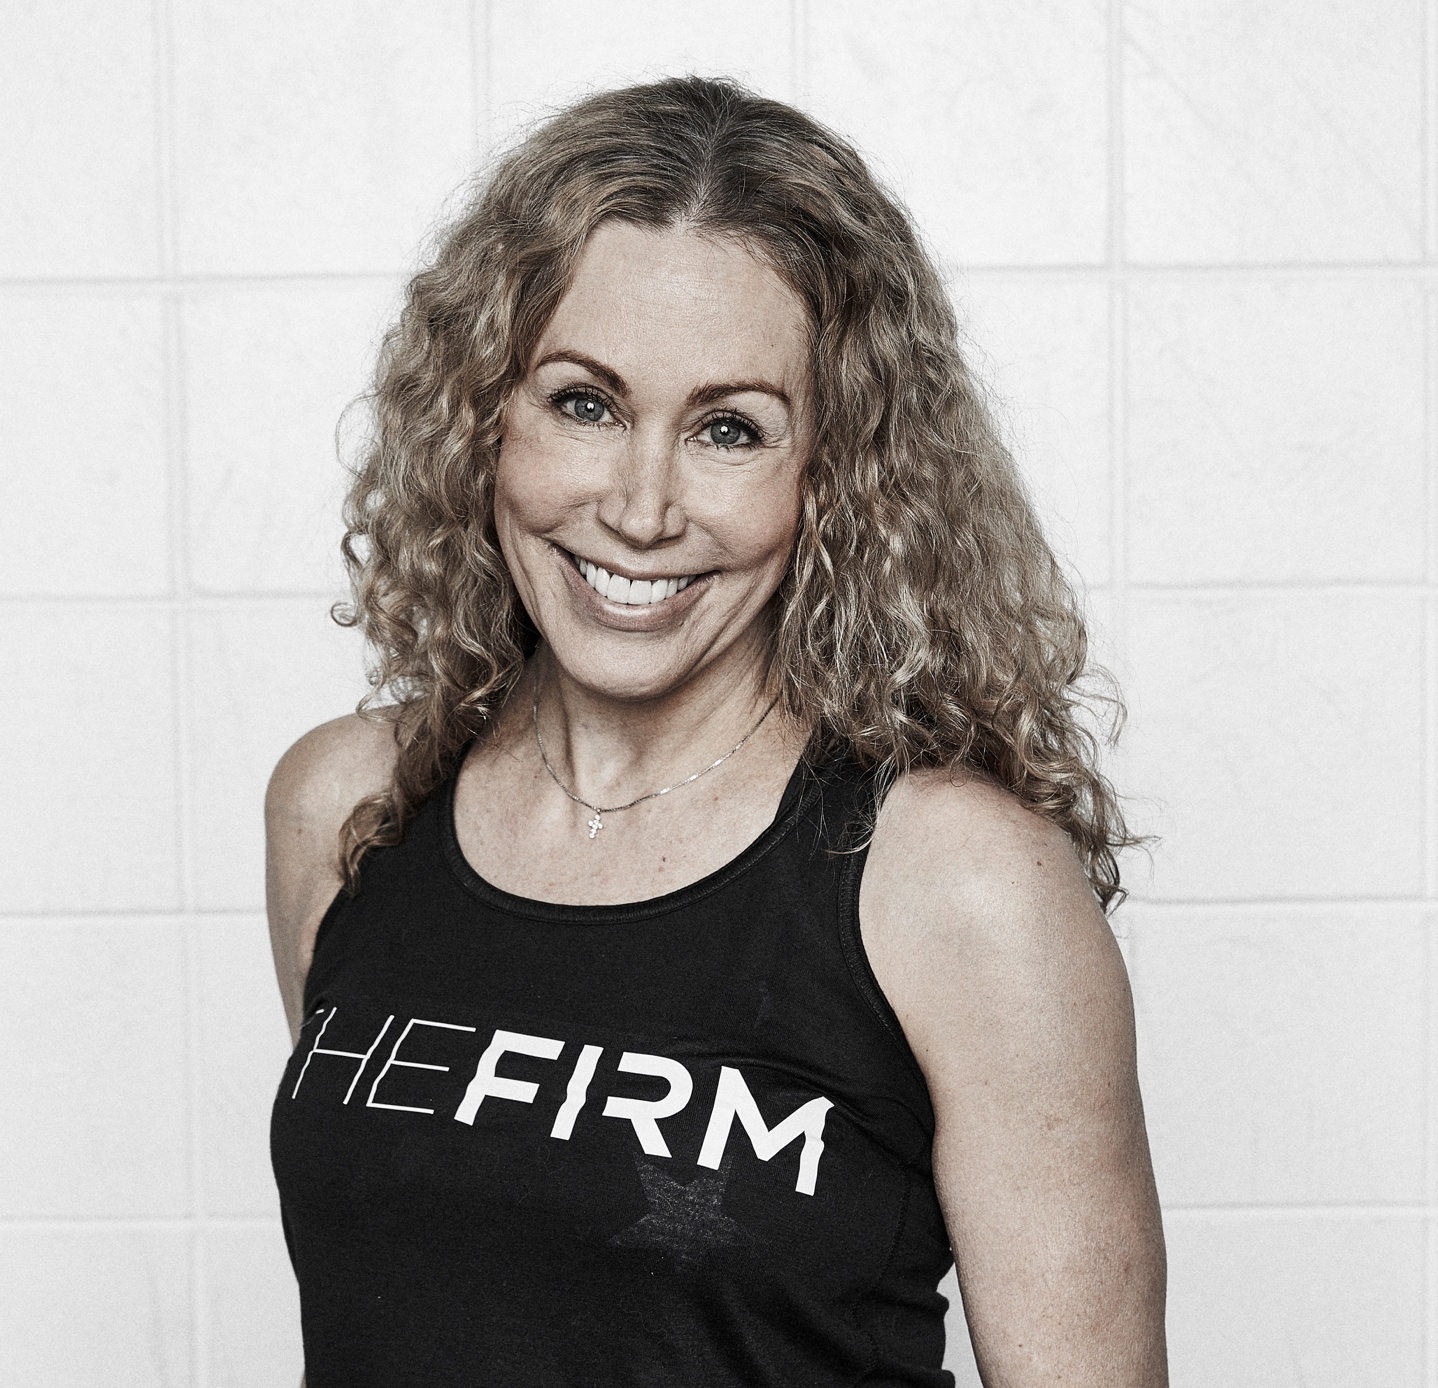 Kelly Miyamoto, The Firm's in-house personal training expert